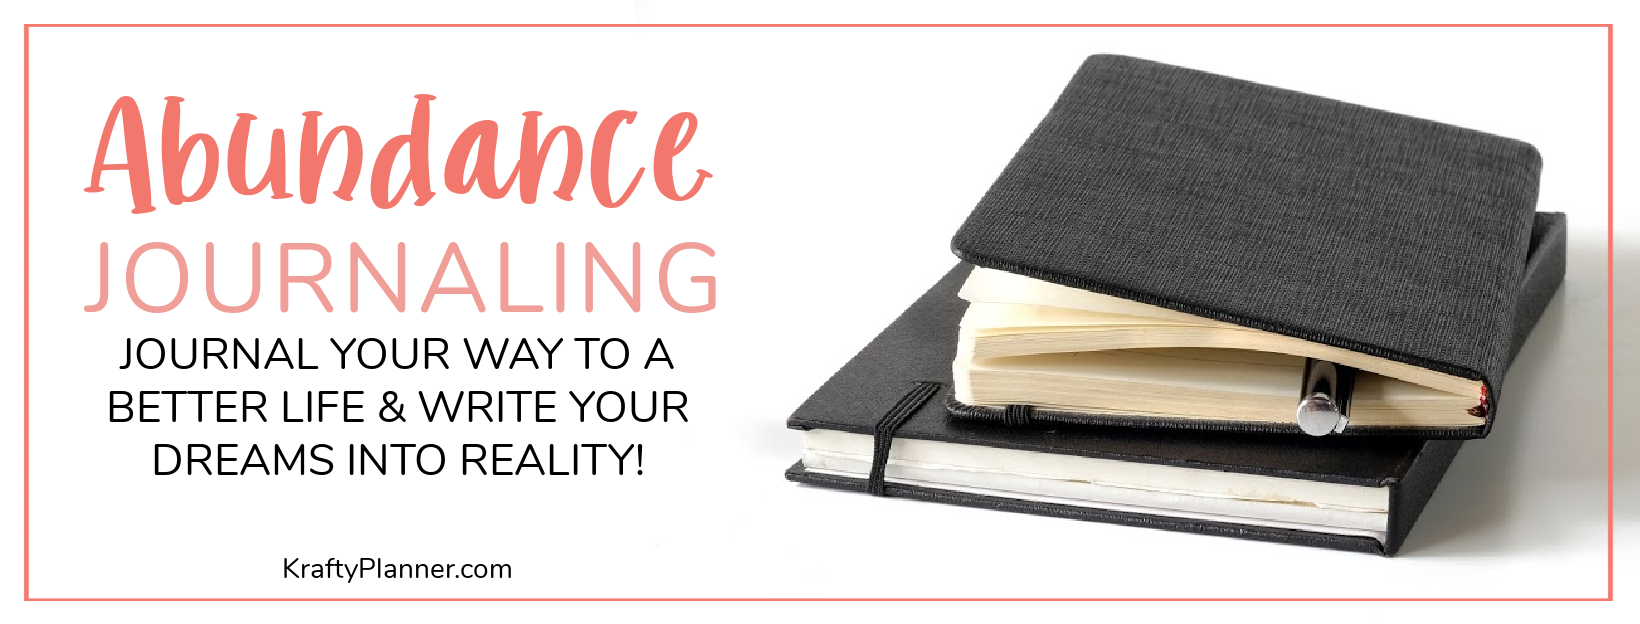 ABUNDANCE JOURNALING: Journal your way to a better life and write your dreams into reality!